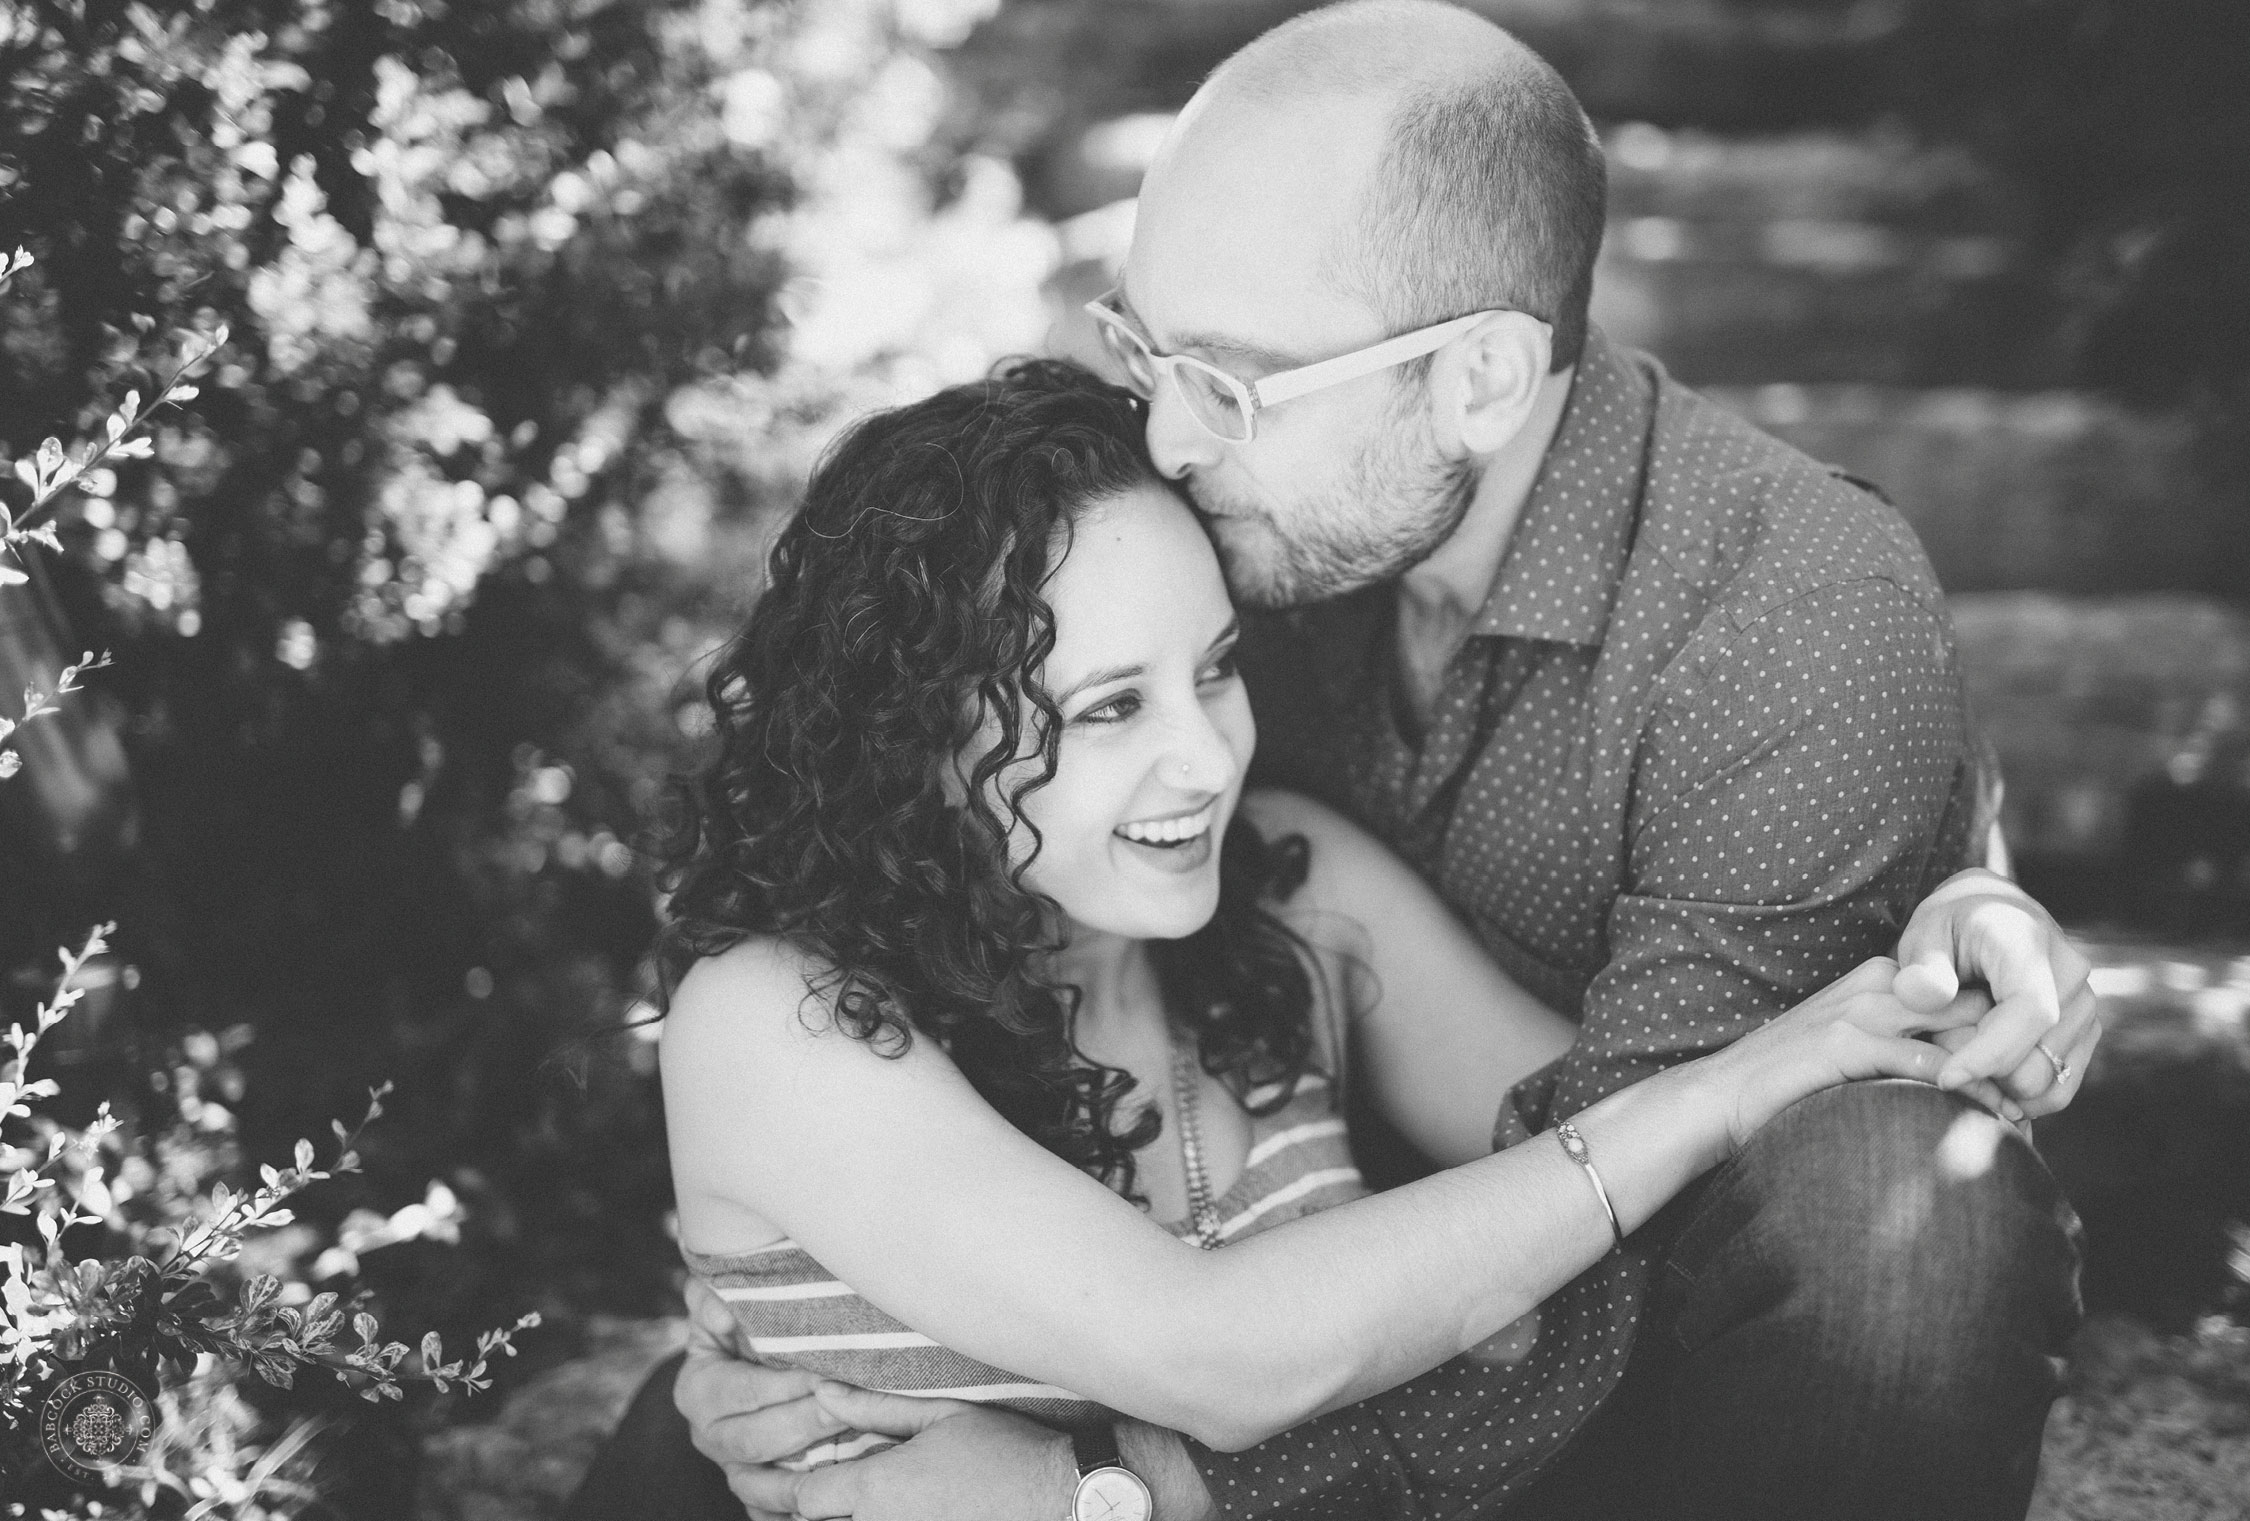 anusha-andrew-engagement-photographer-columbus-ohio-.jpg